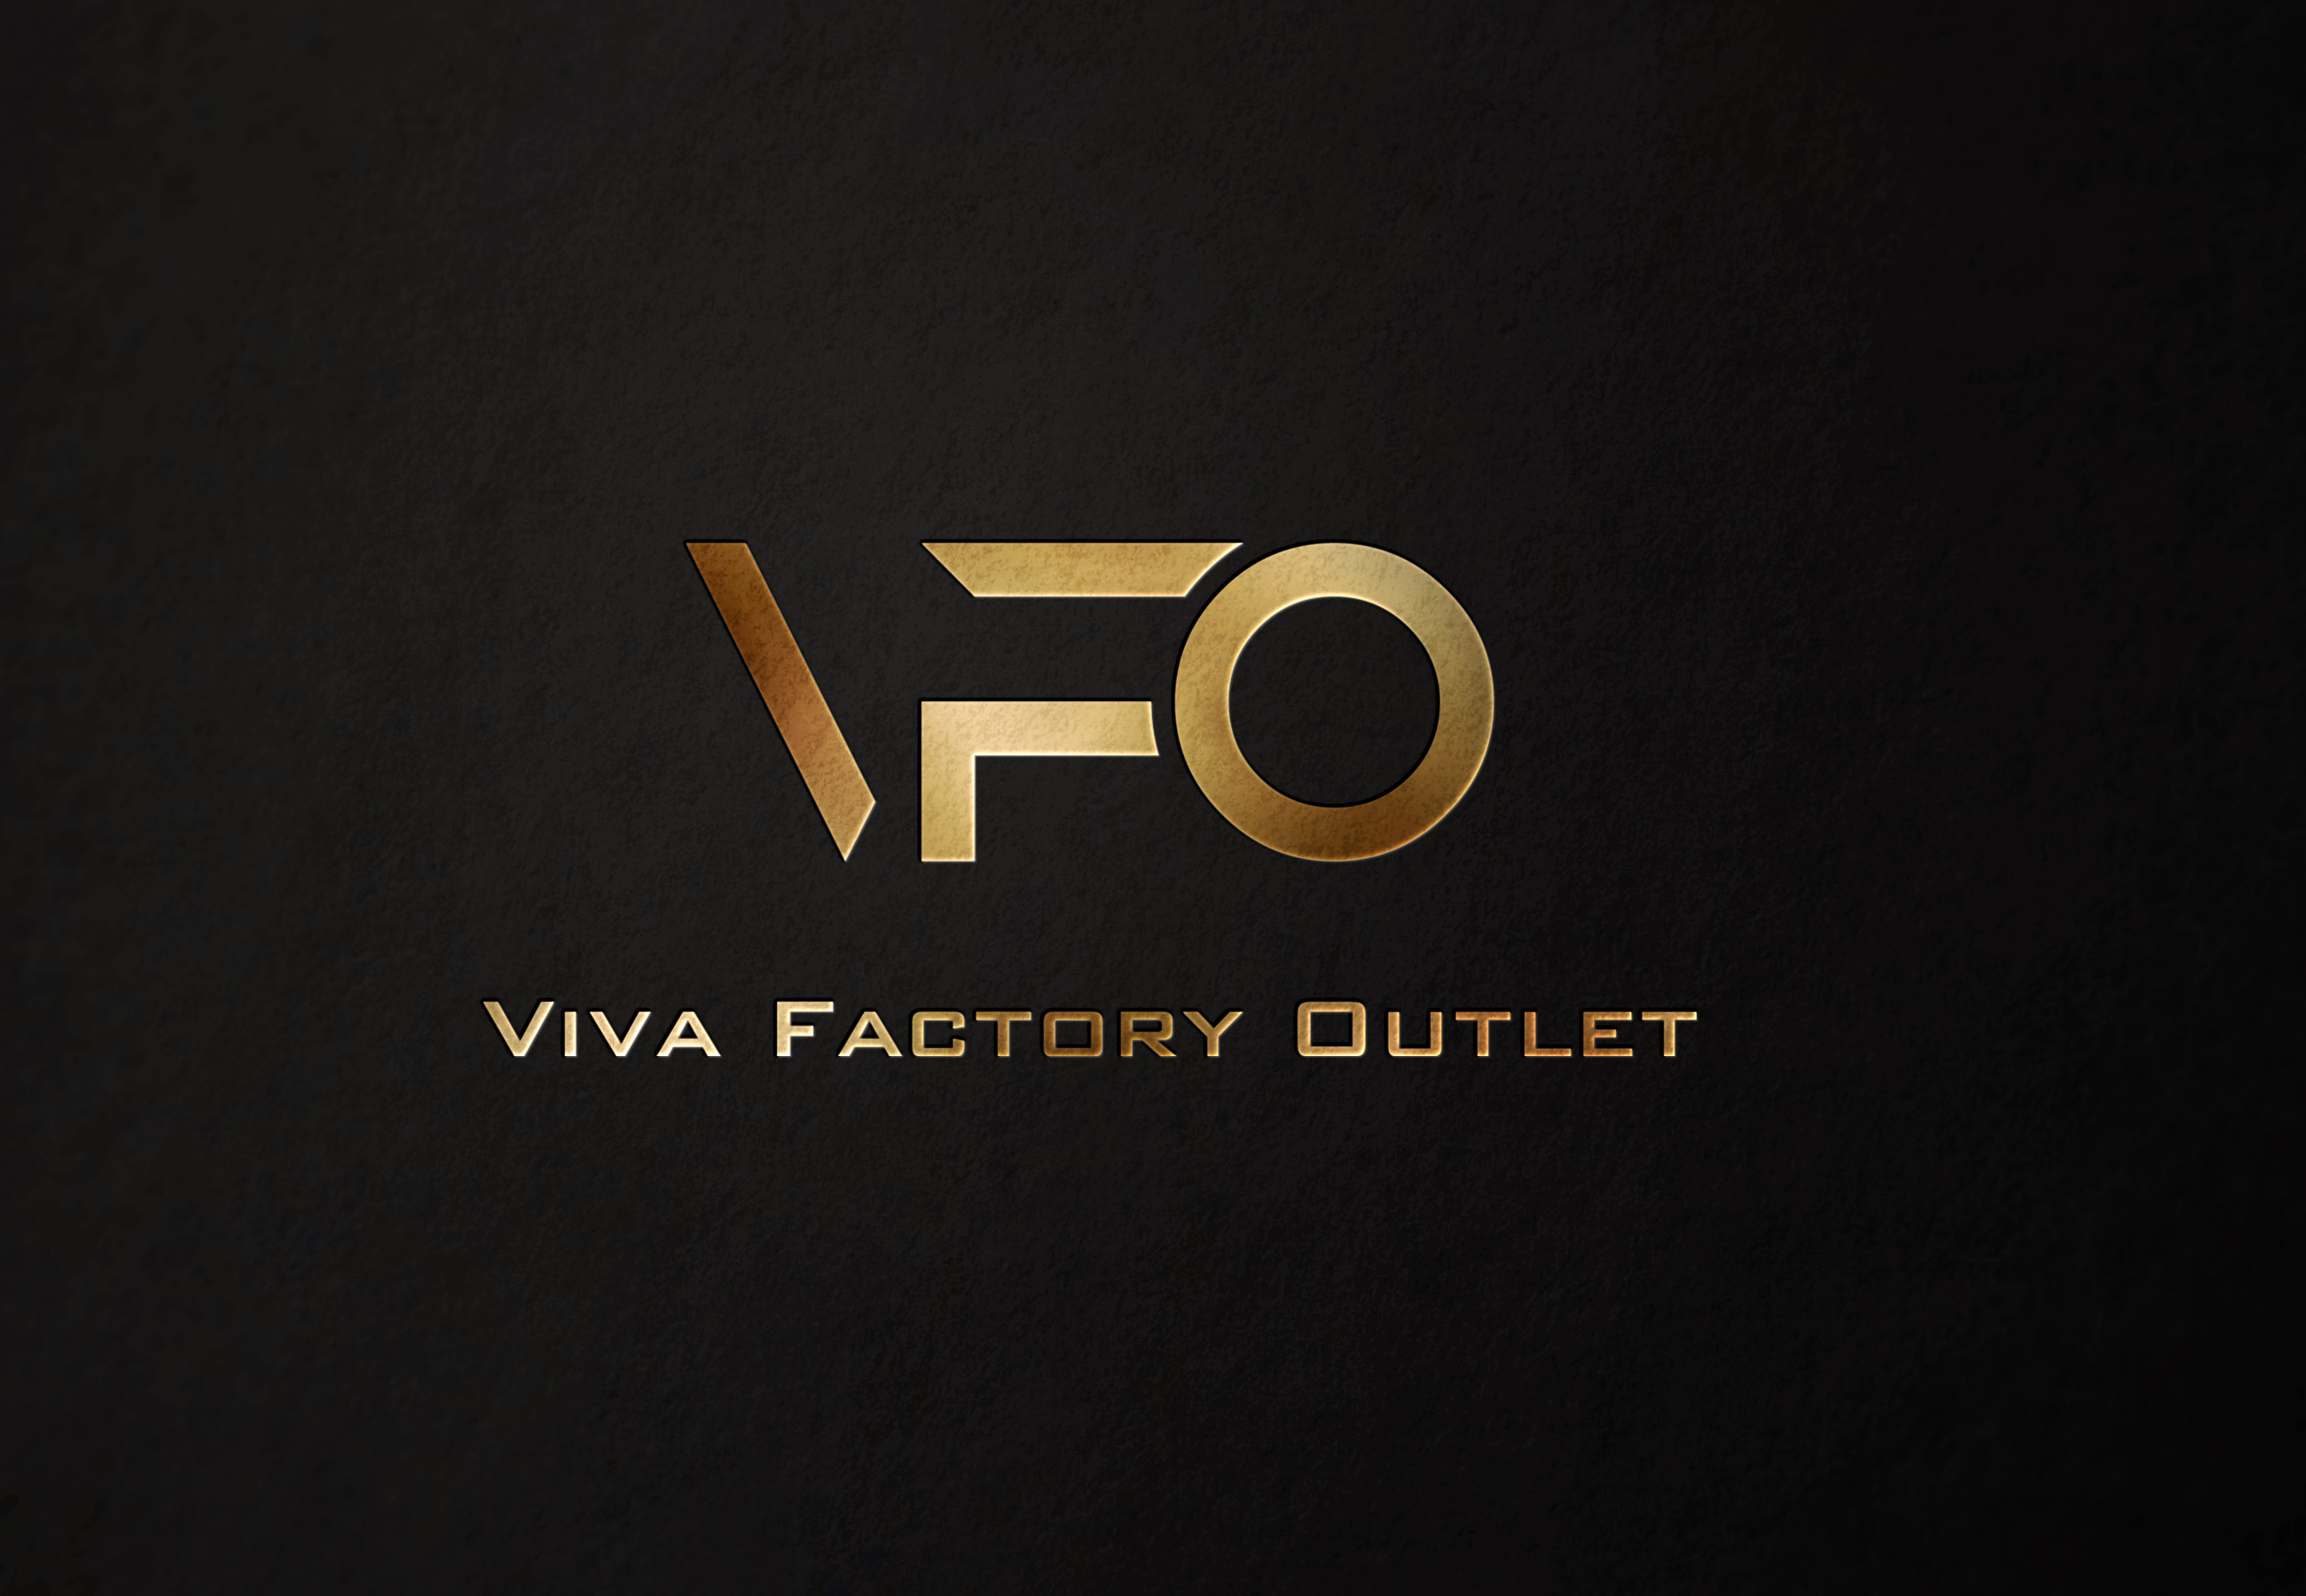 Viva Factory Outlet